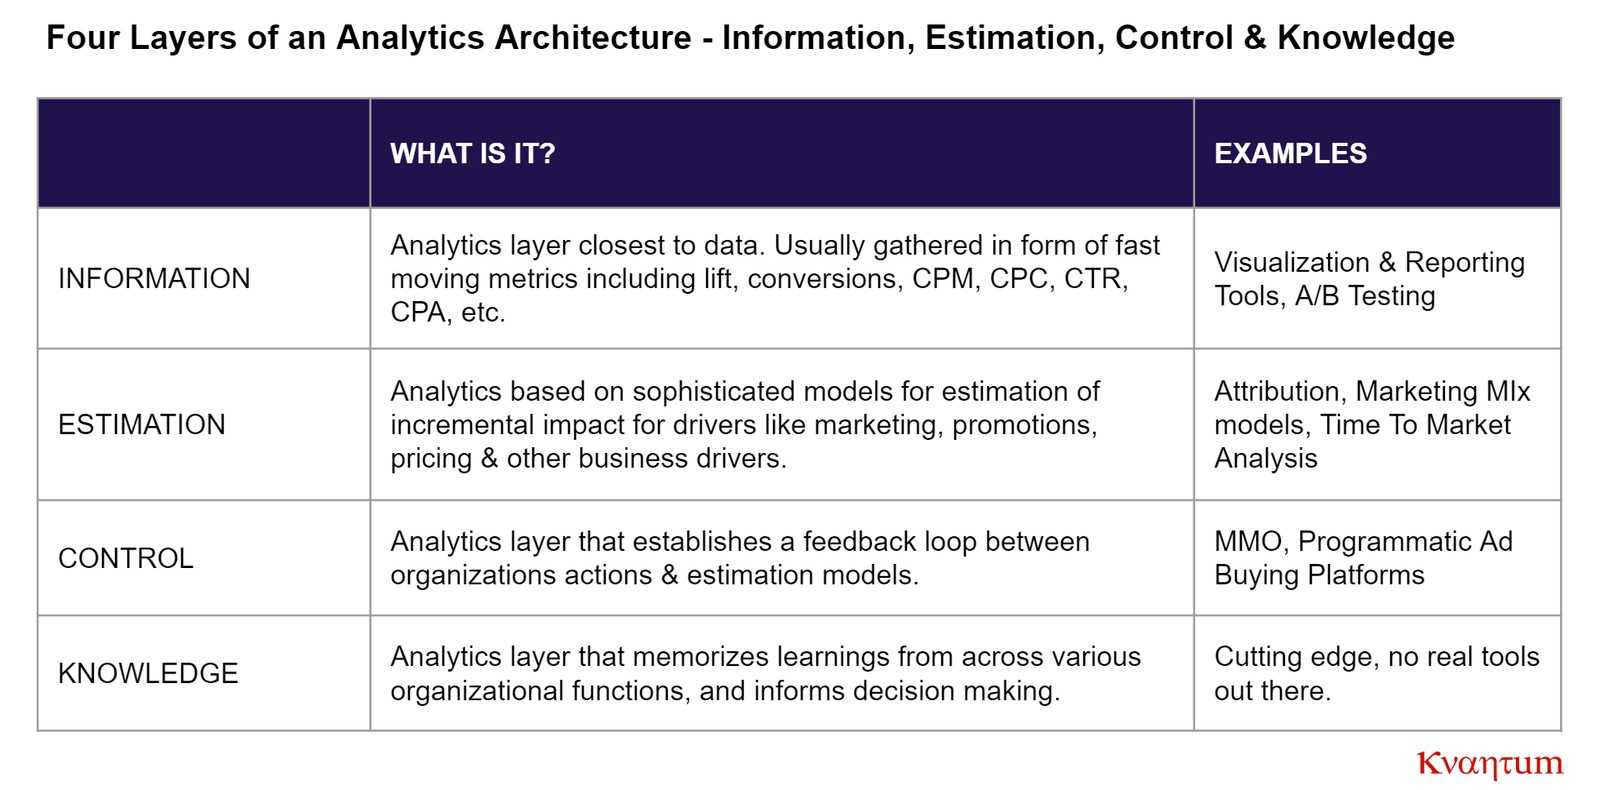 kvantum analytics architecture information estimation control knowledge